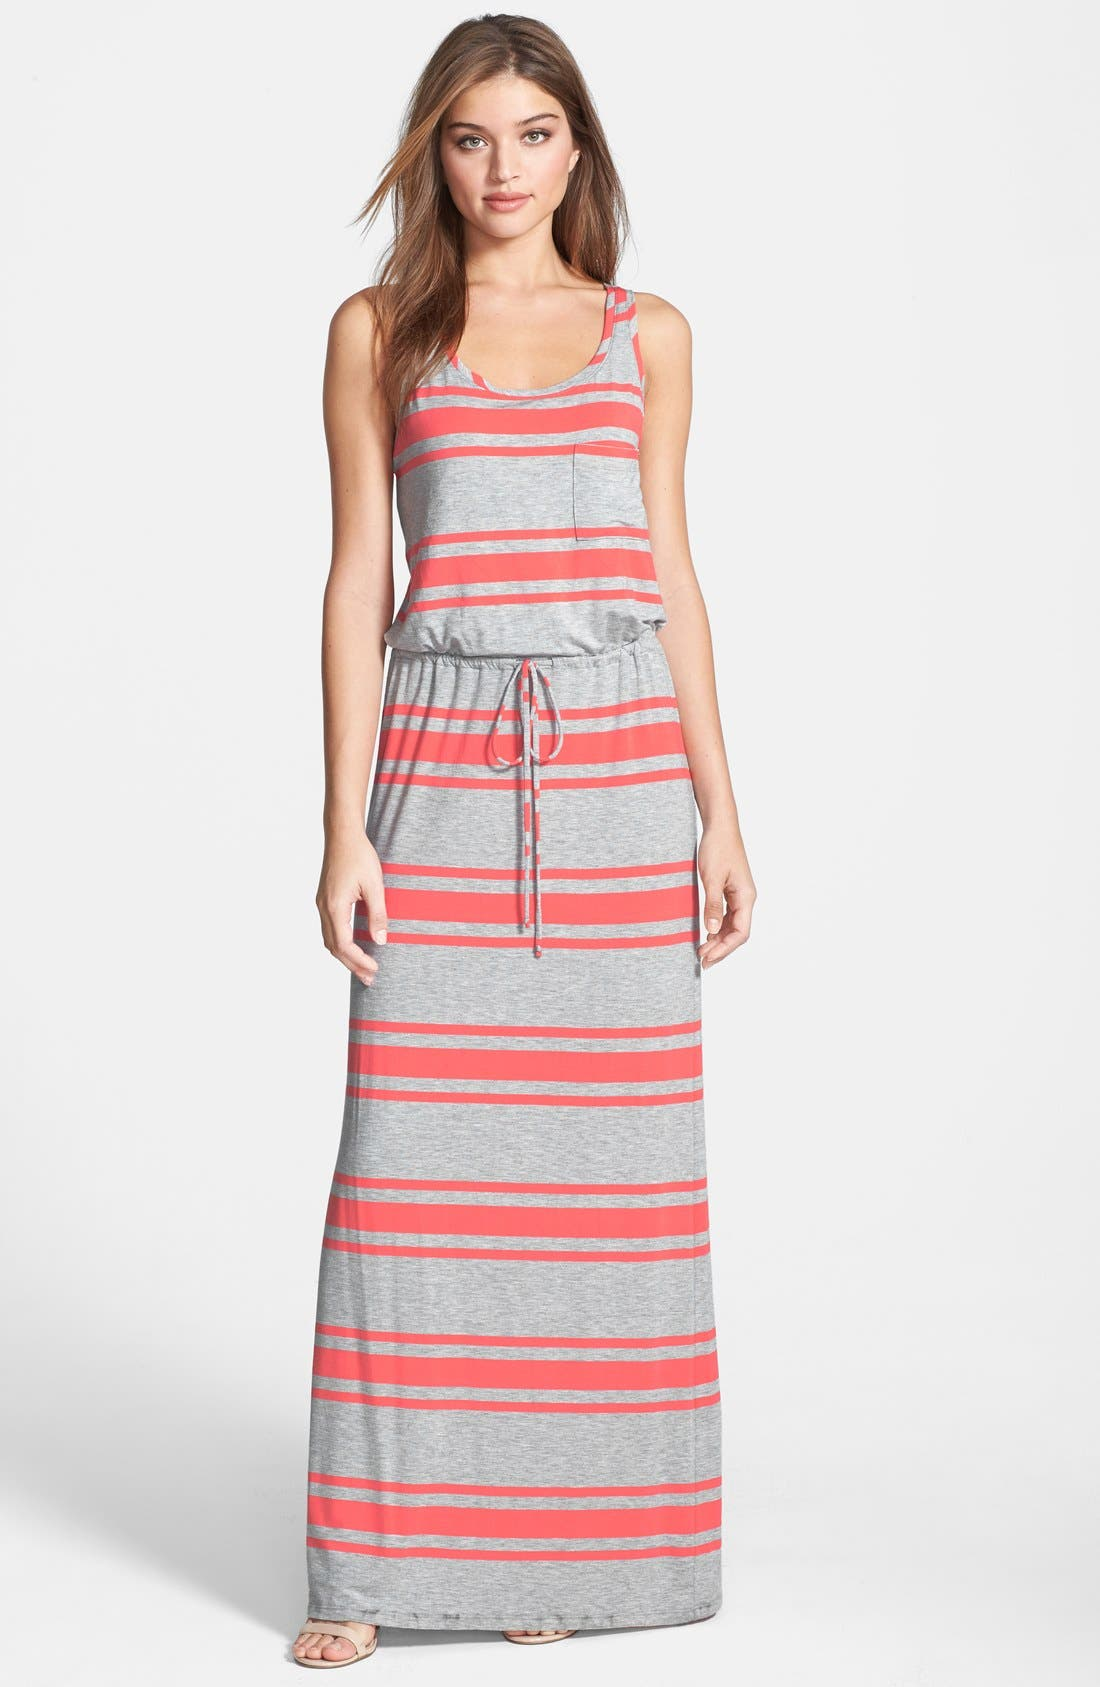 Drawstring Jersey Maxi Dress,                             Main thumbnail 1, color,                             Heather Grey/ Coral Stripe